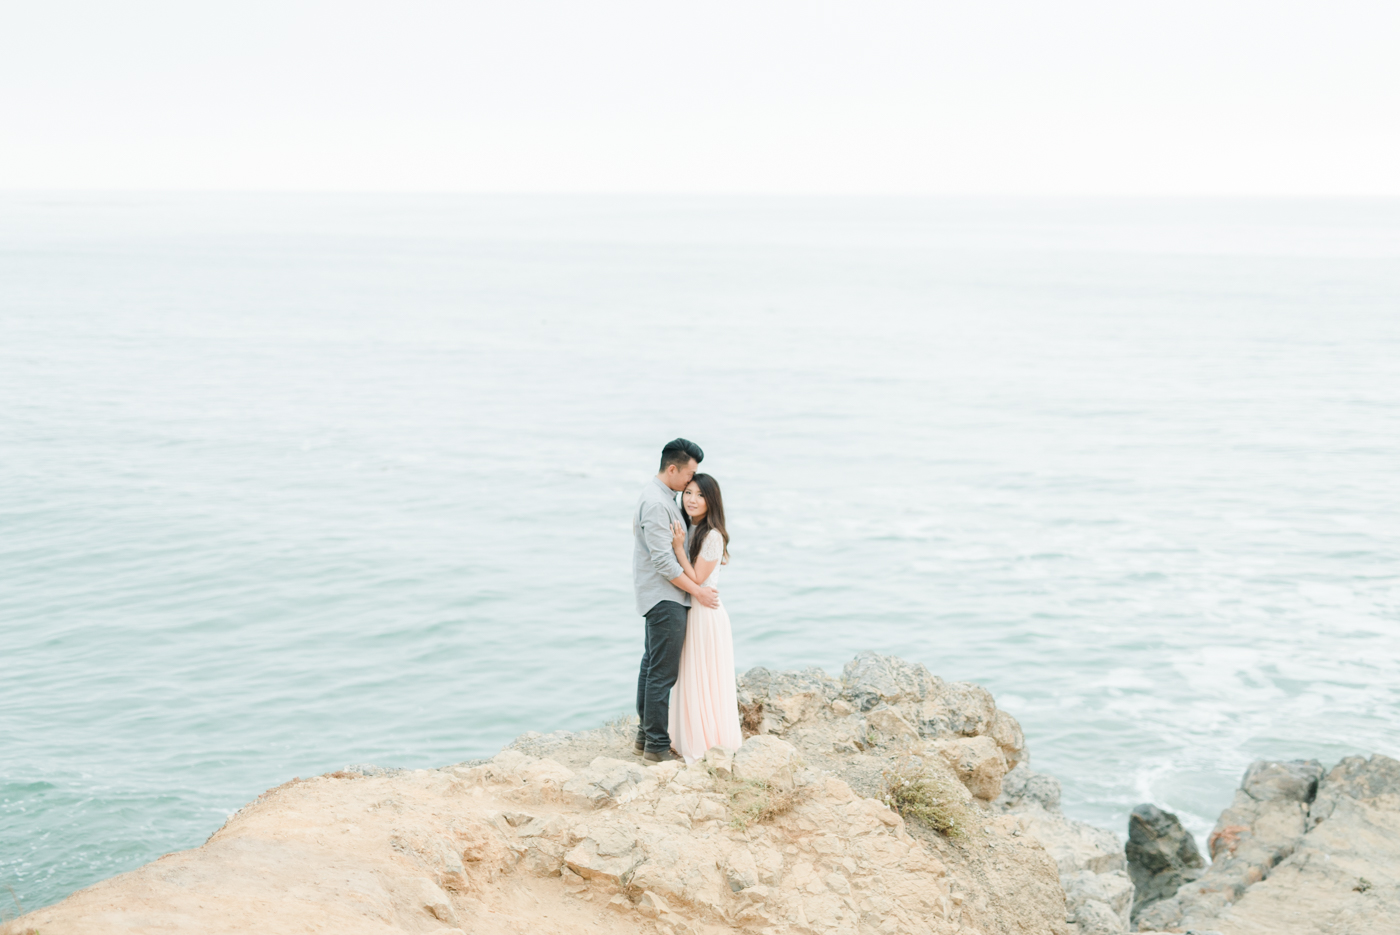 Palos_Verdes_Beach_Engagement_Session_Los_Angles_Fine_Art_Wedding_Photographer-19.jpg